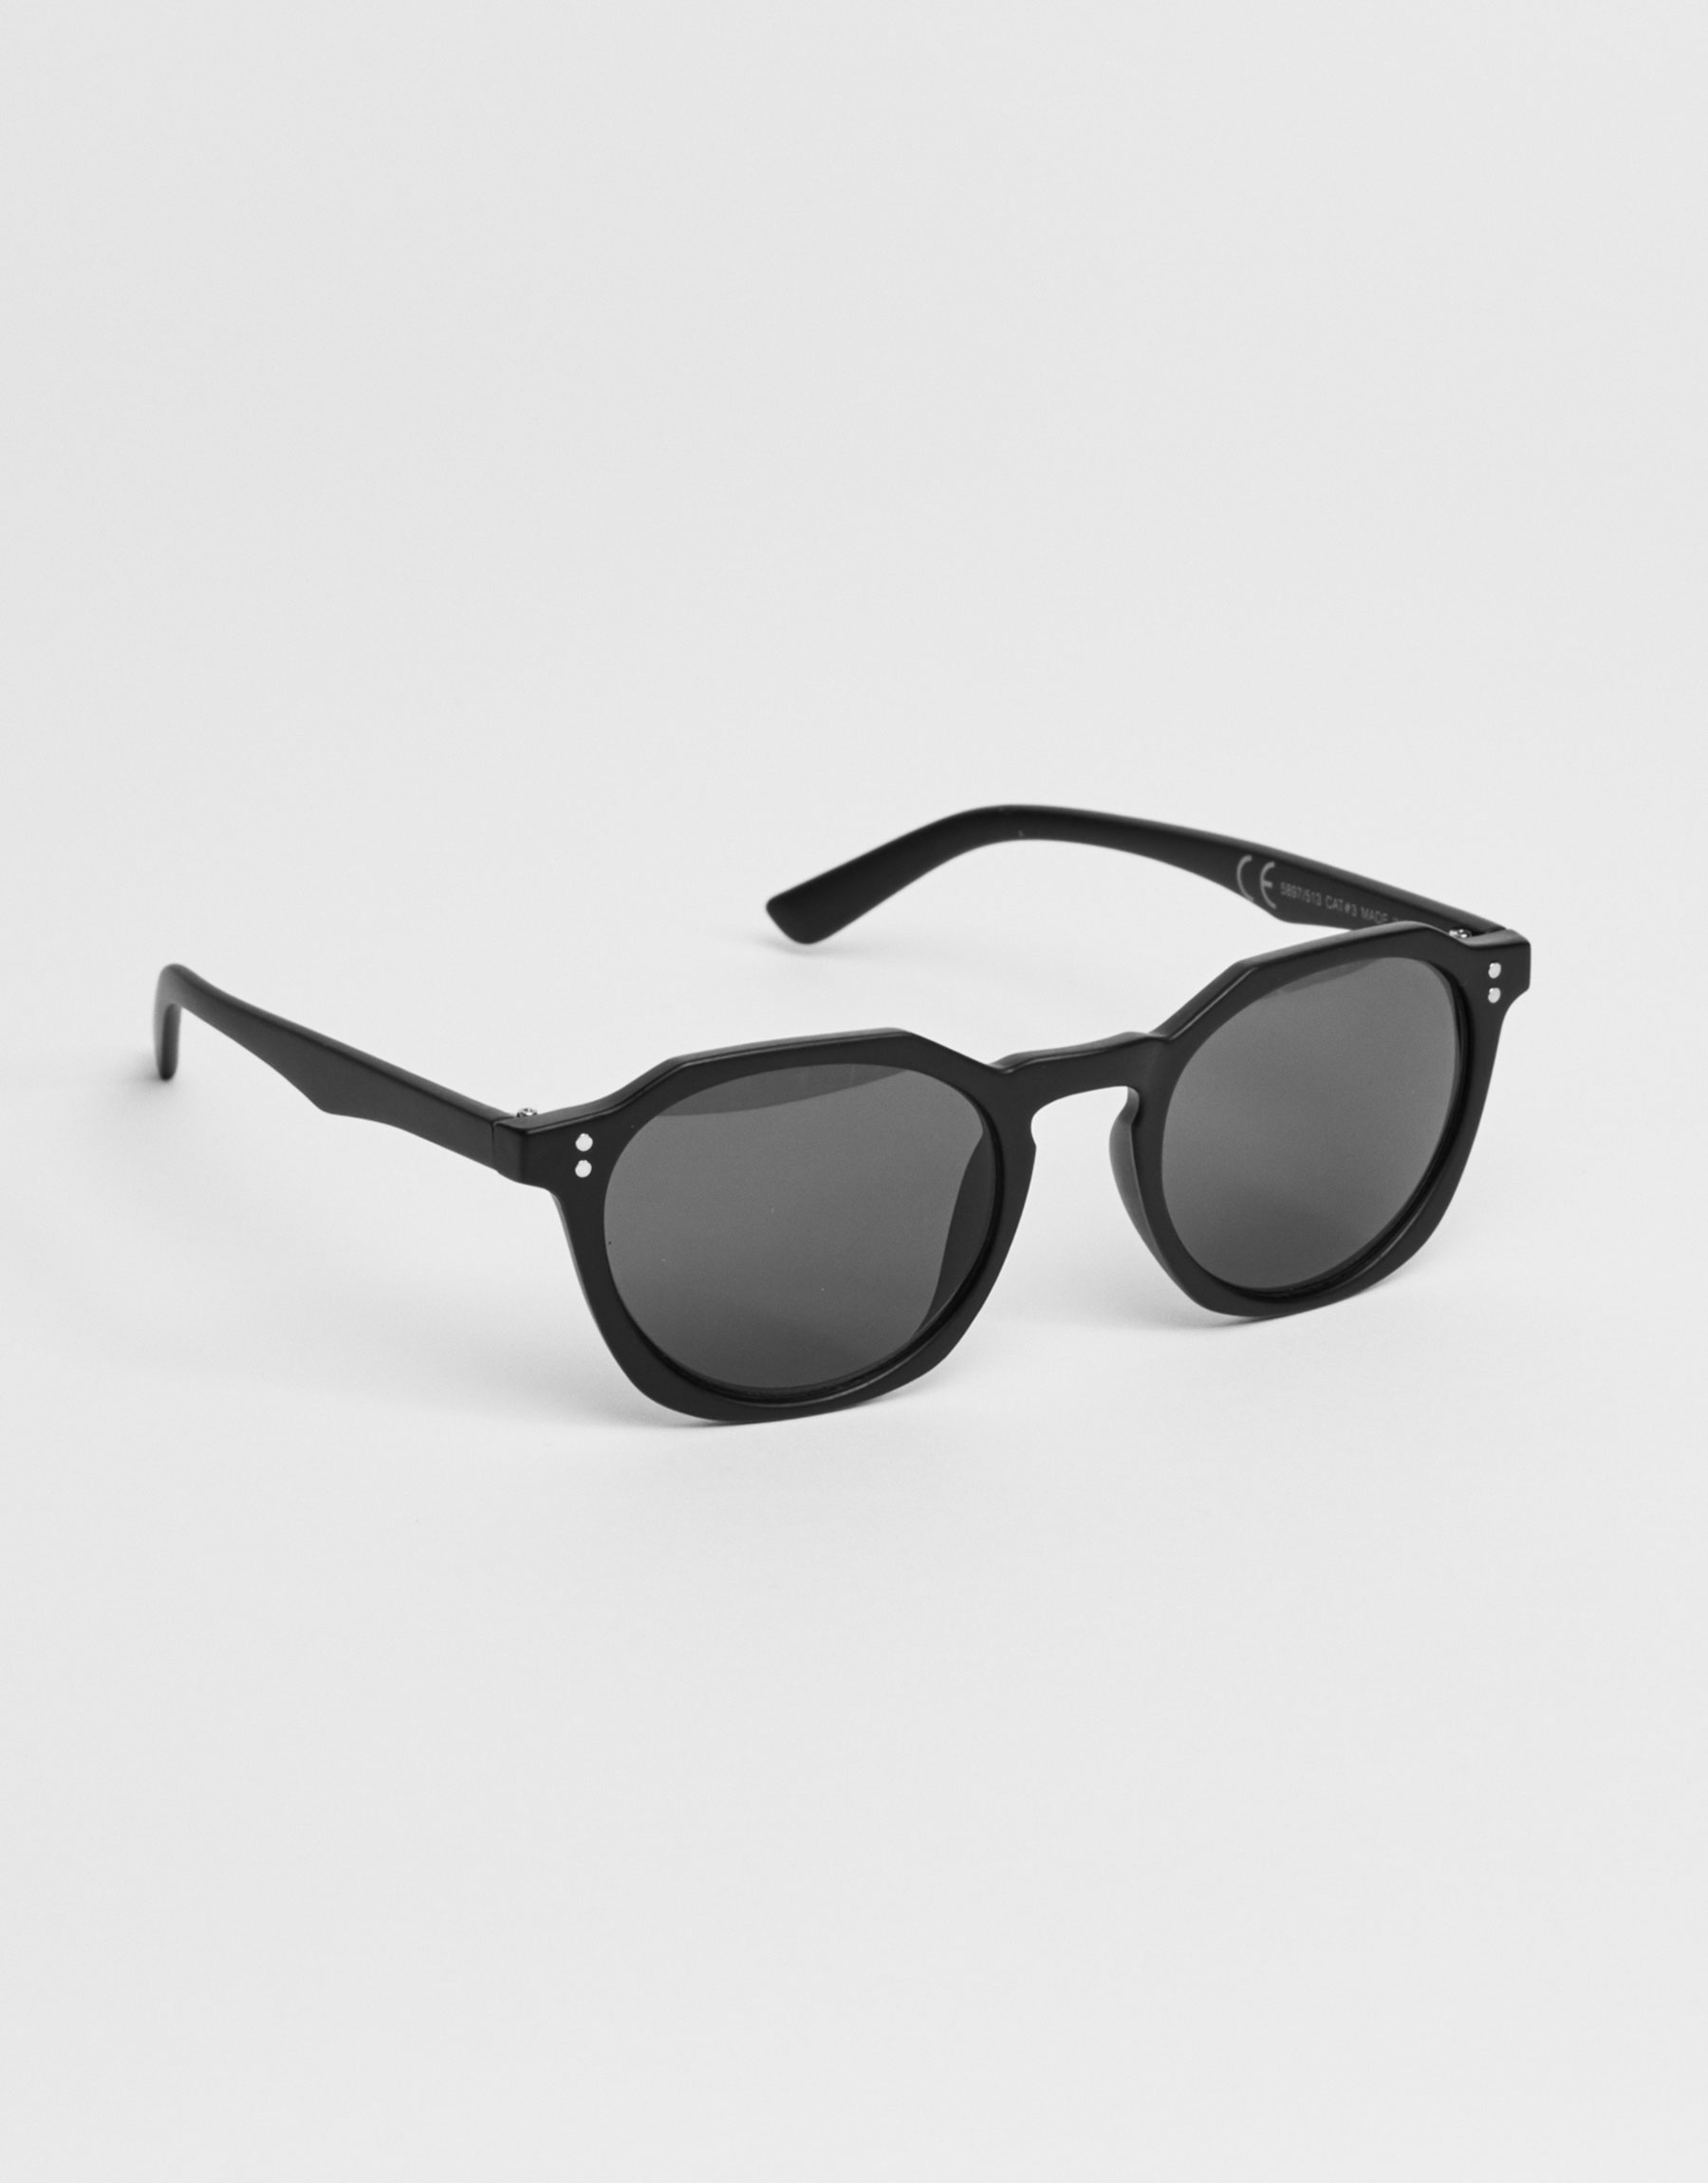 Polygonal black frame sunglasses